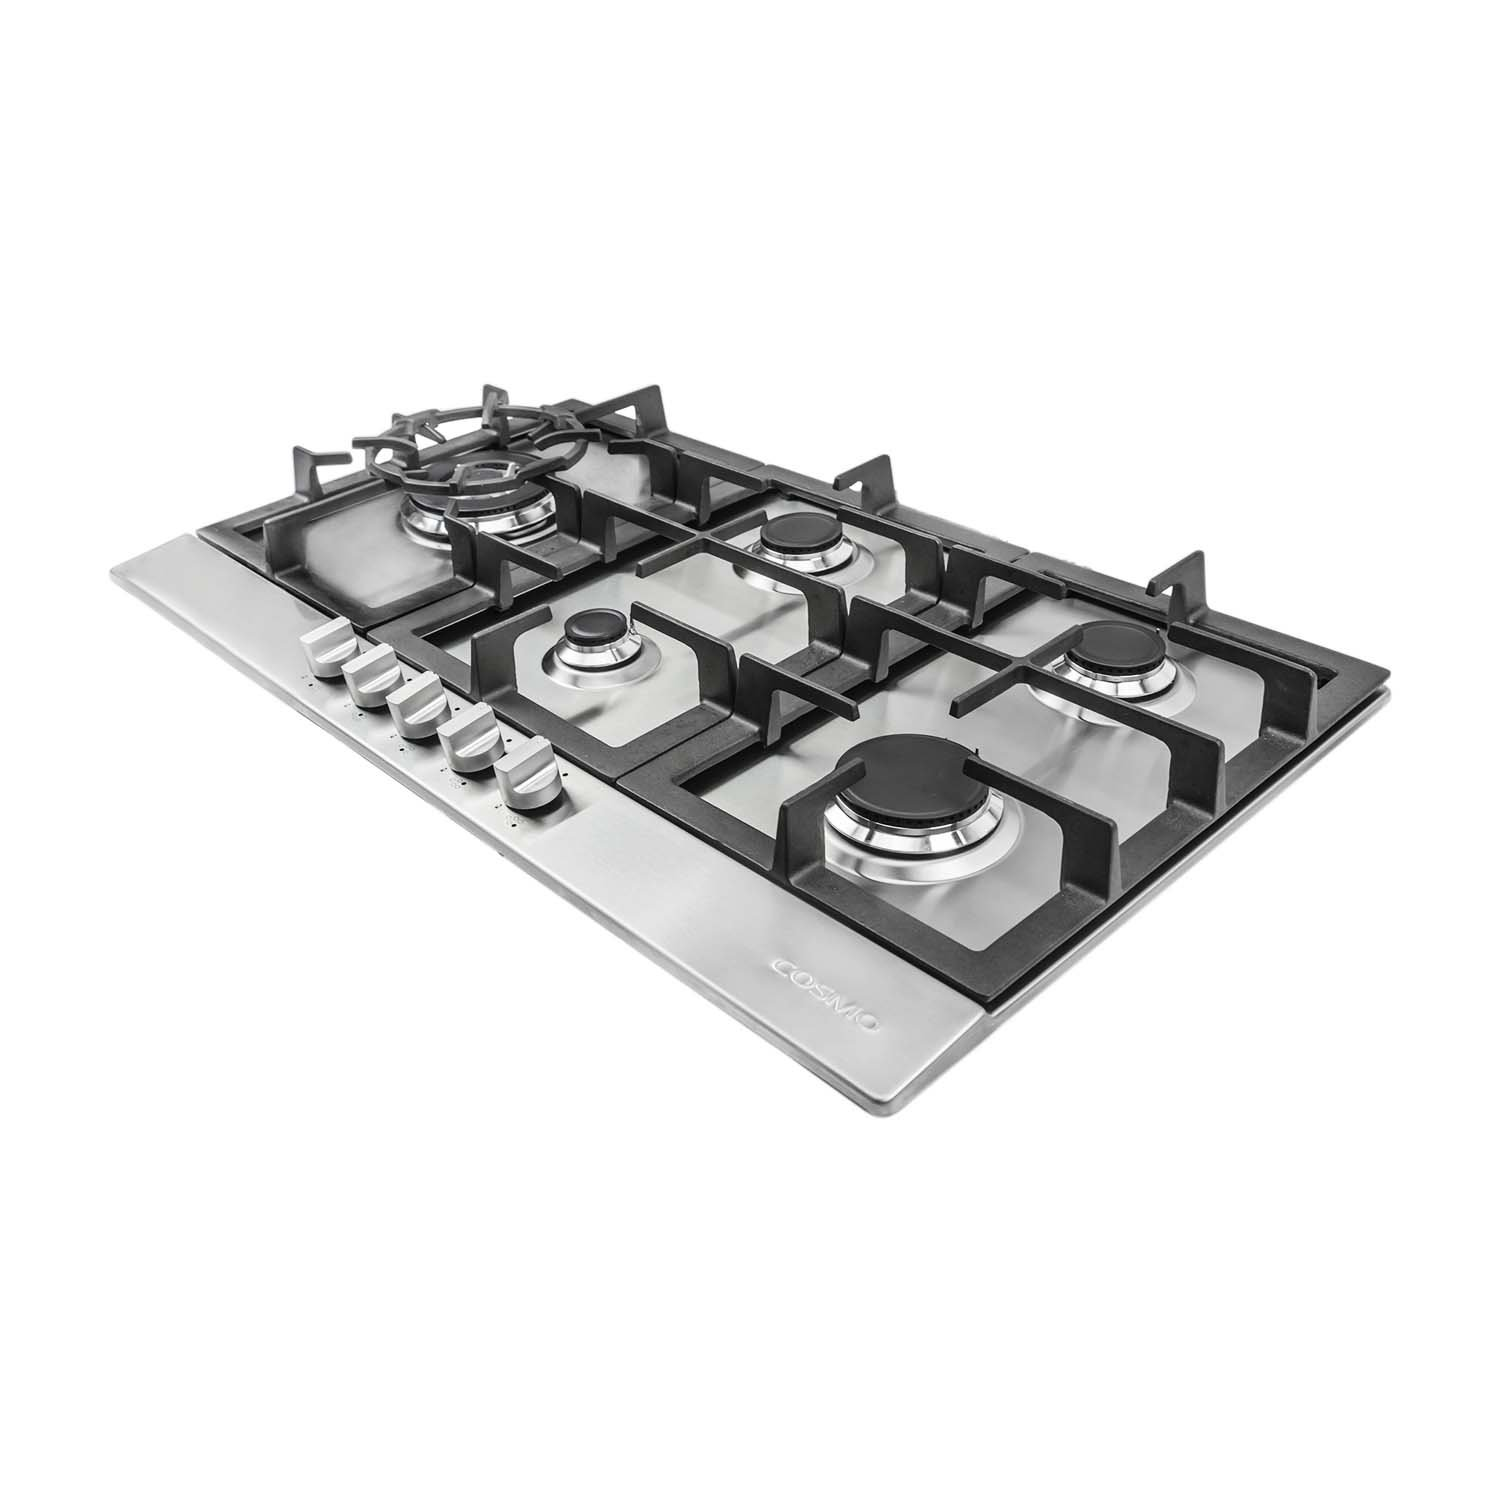 Cosmo 850SLTX-E 30 in Professional Style Gas Cooktop Metal Knobs in Stainless Steel 5 Performance Burners with Iron Grates